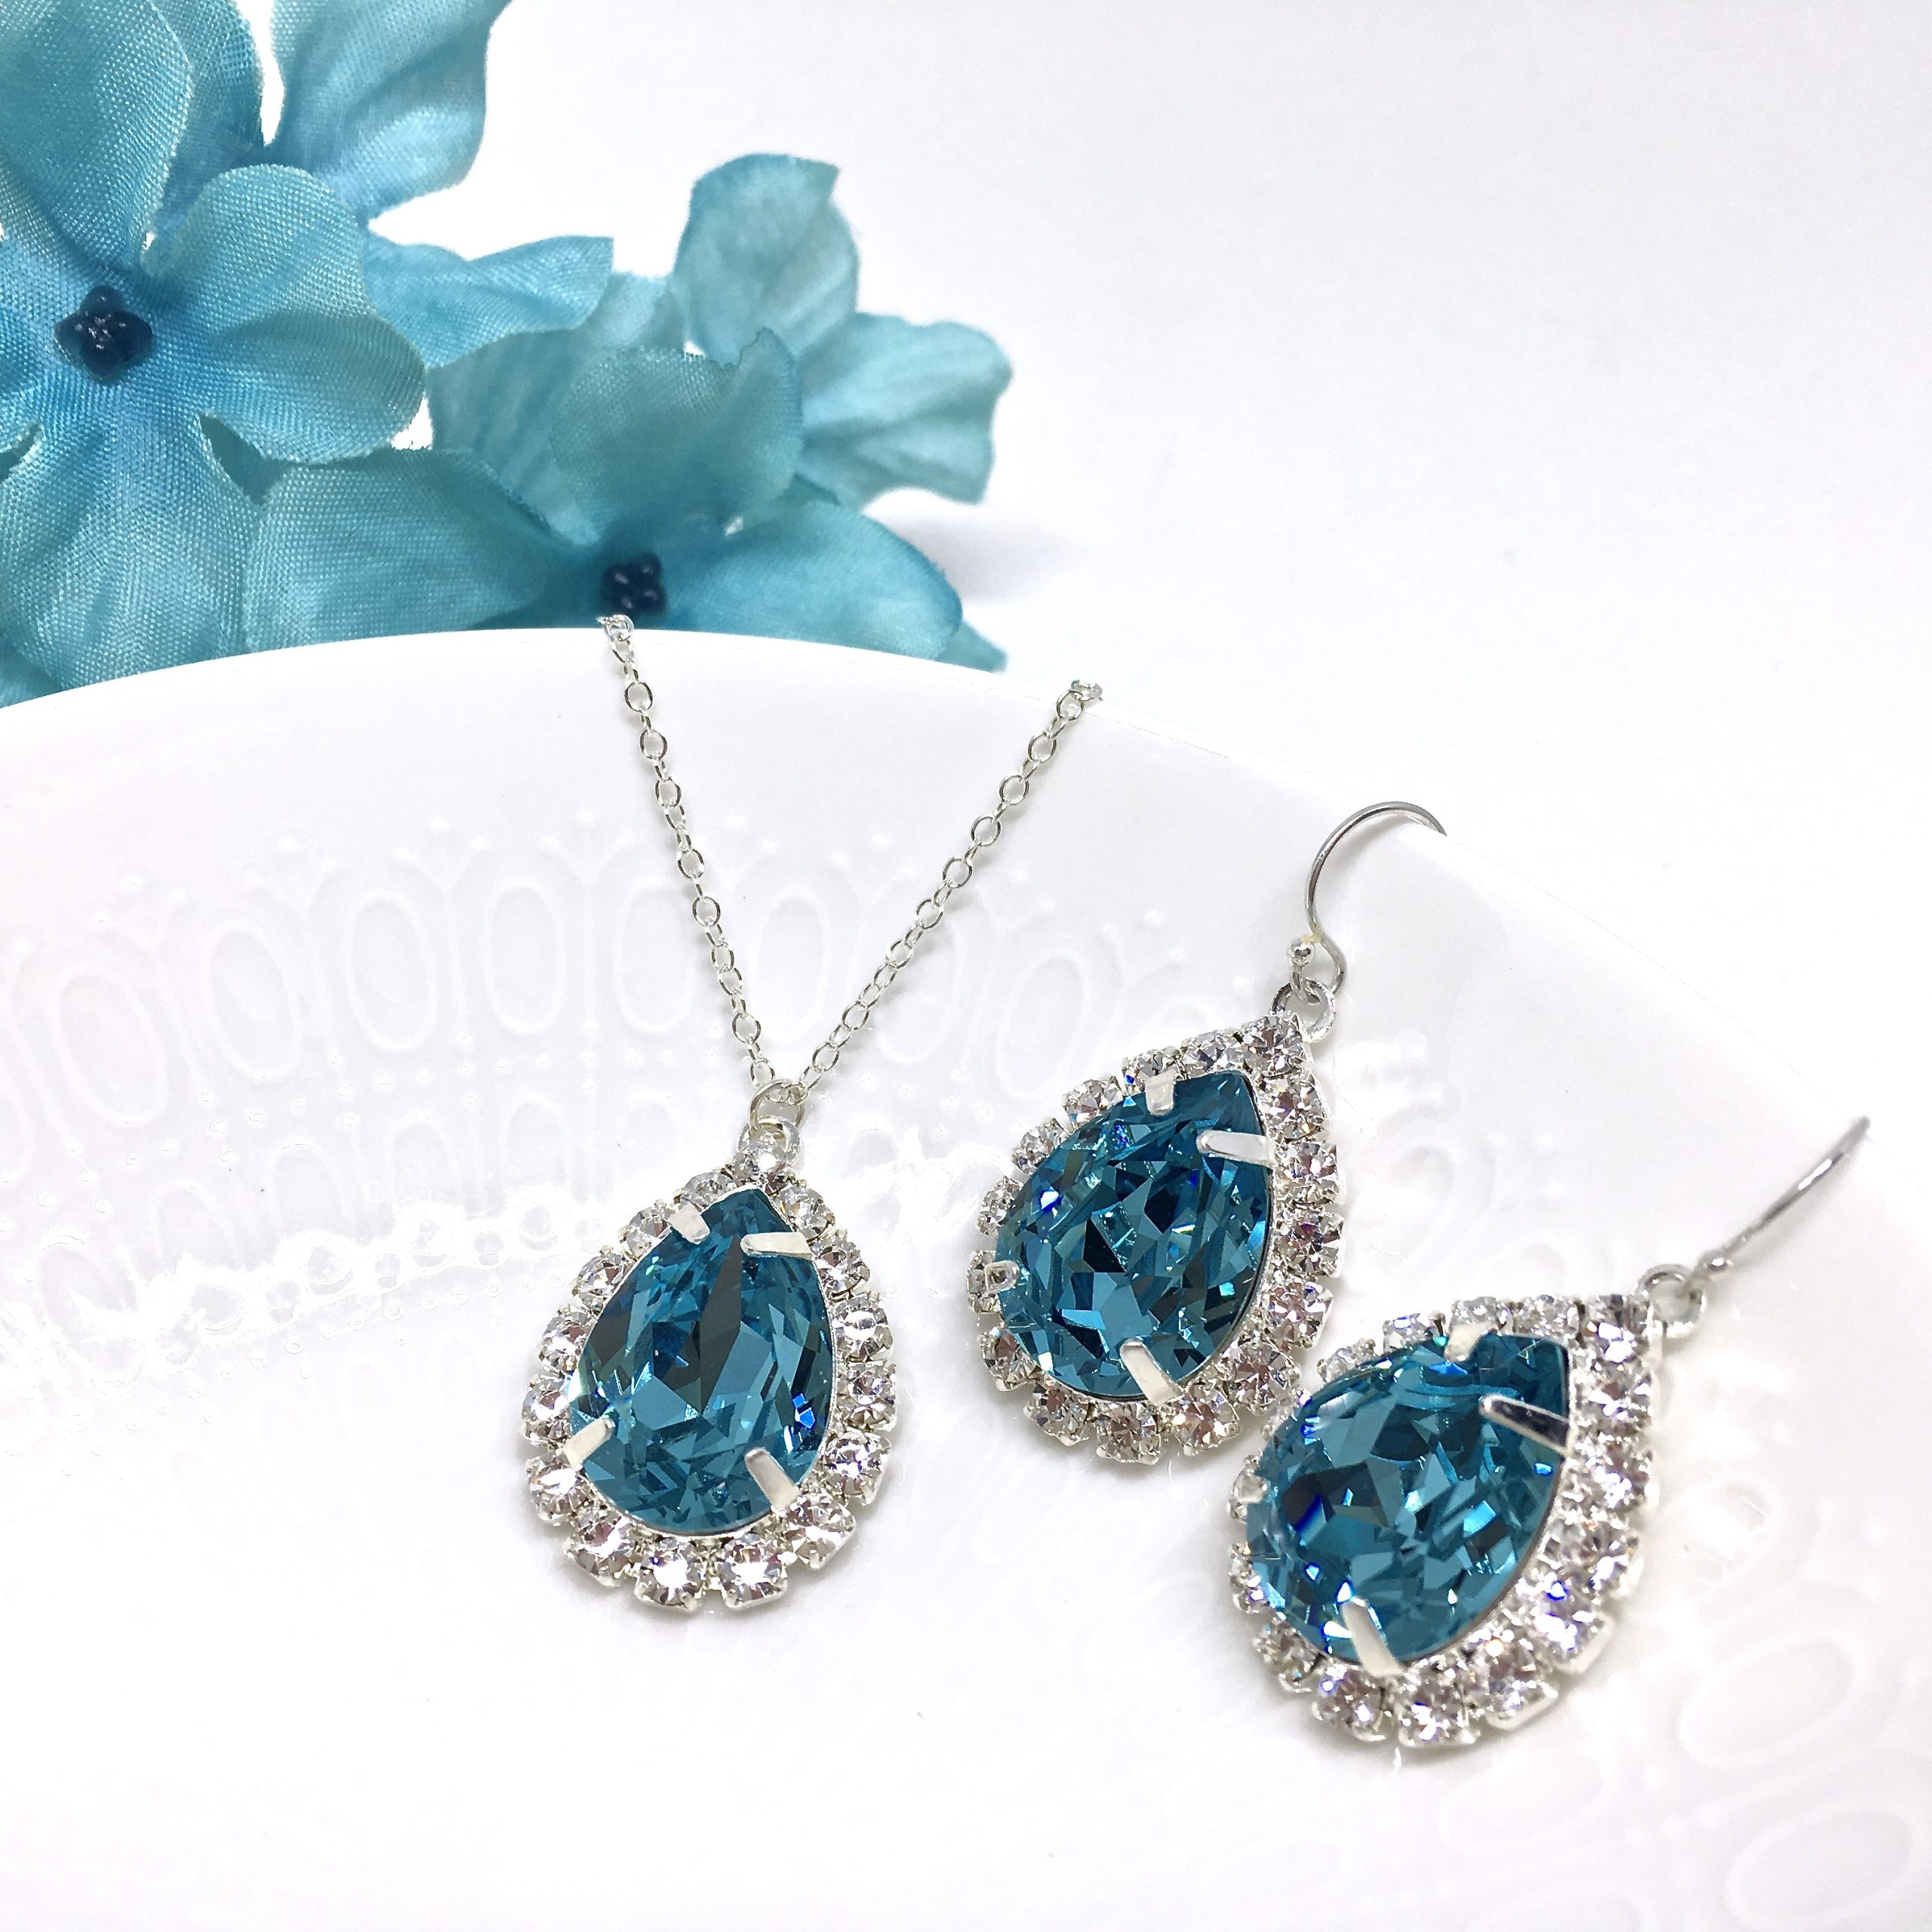 Blue Jewelry Set Halo Necklace With Backdrop Turquoise Swarovski Crystal